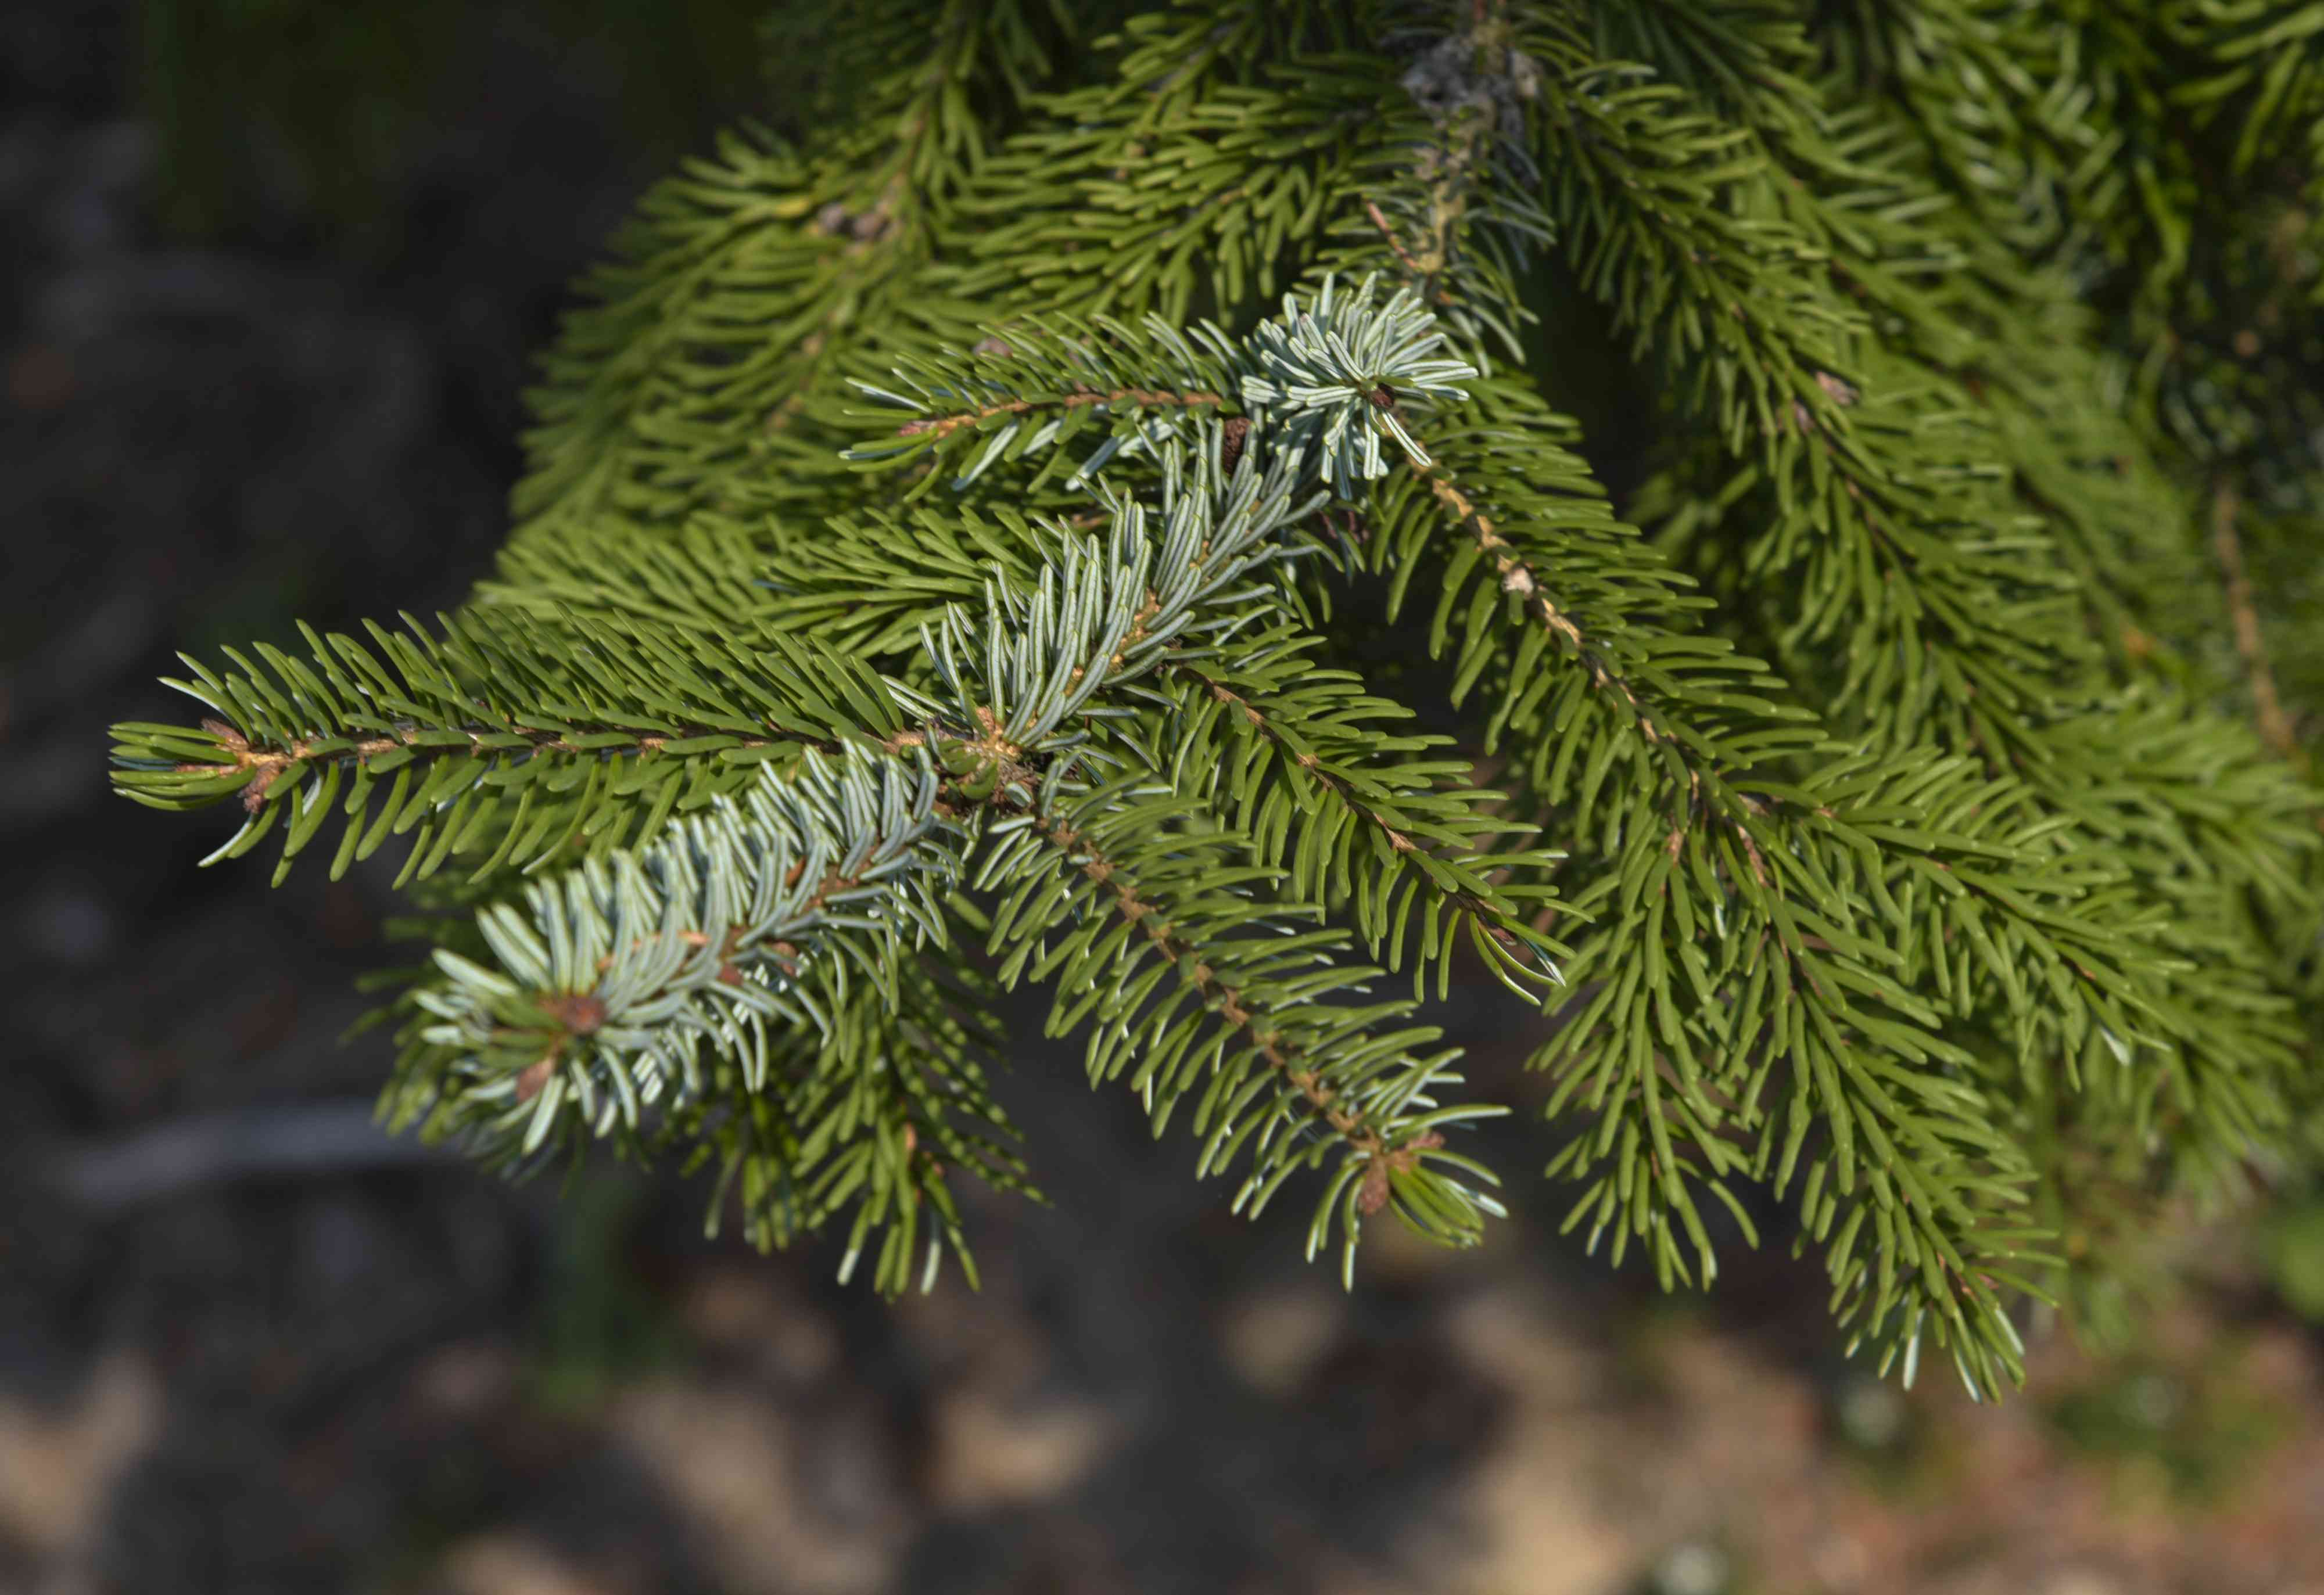 Serbian spruce tree branch with long needles closeup